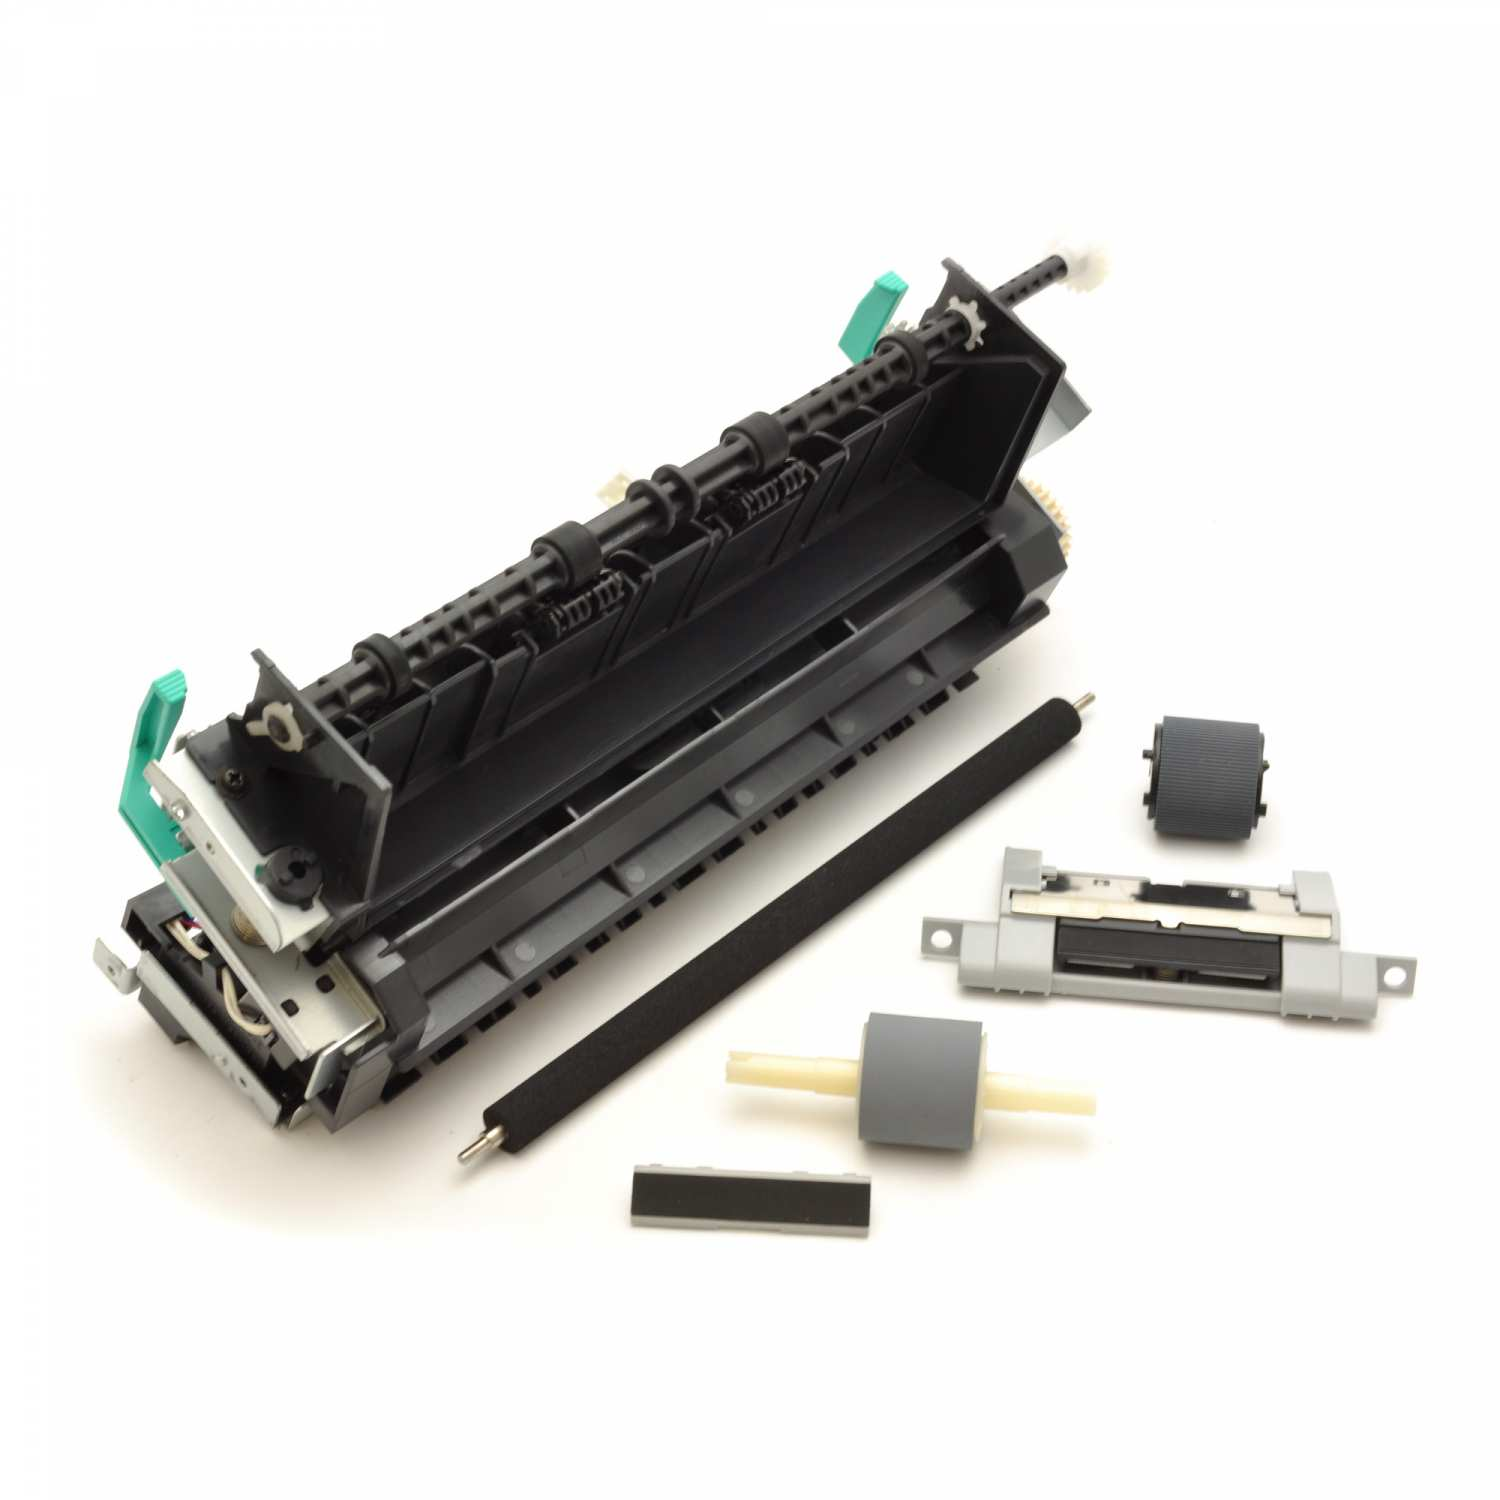 Printel Refurbished MK-P2015-110 / RM1-4247-MK Maintenance Kit (110V) for HP LaserJet M2727, 2041, P2015, with RM1-4247-000 Fuser included